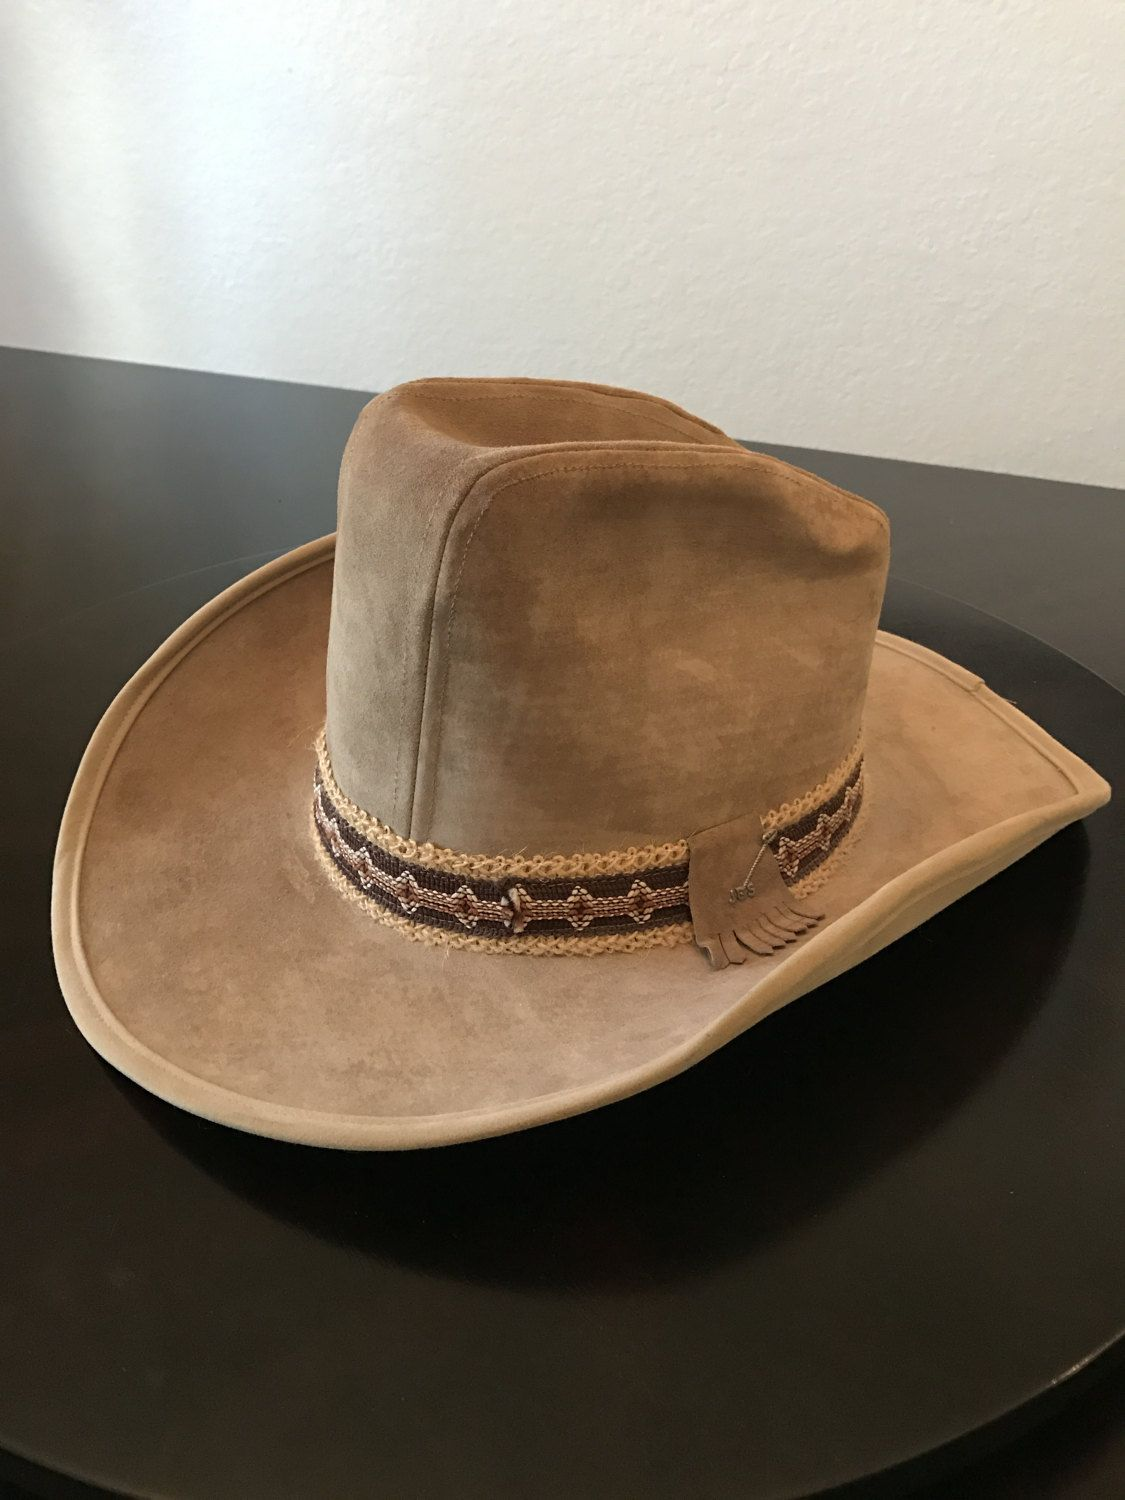 Vintage Suede Leather Stetson  JBS Stetson Cowboy Hat by BazemoreVault on  Etsy d2609a6911b3